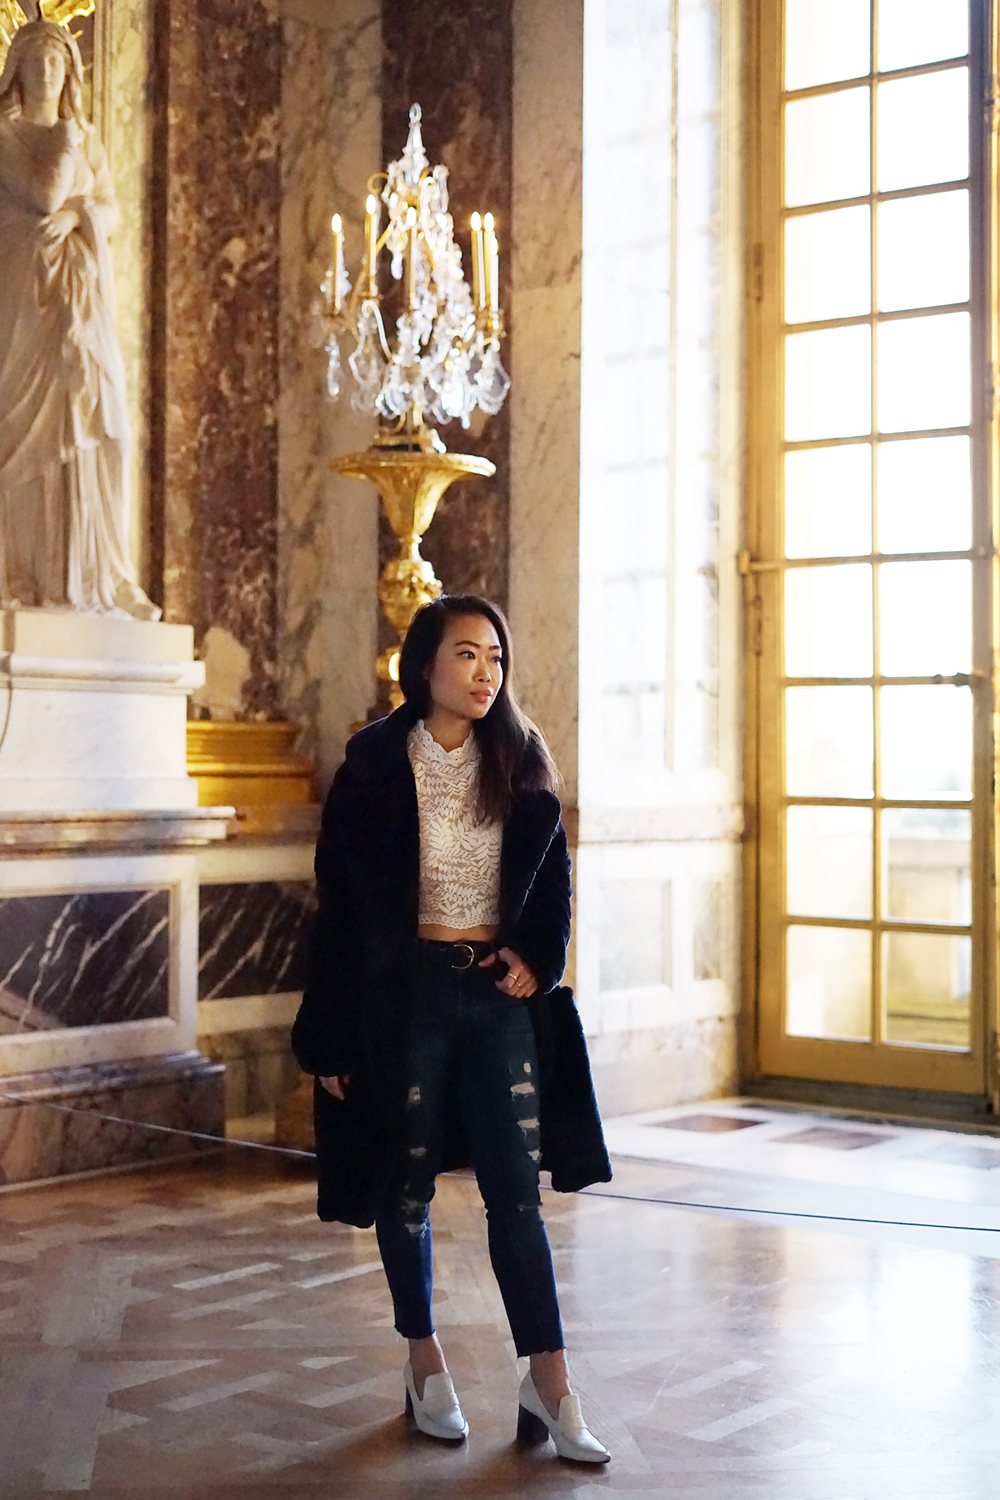 10chateau-versailles-france-travel-style-ootd